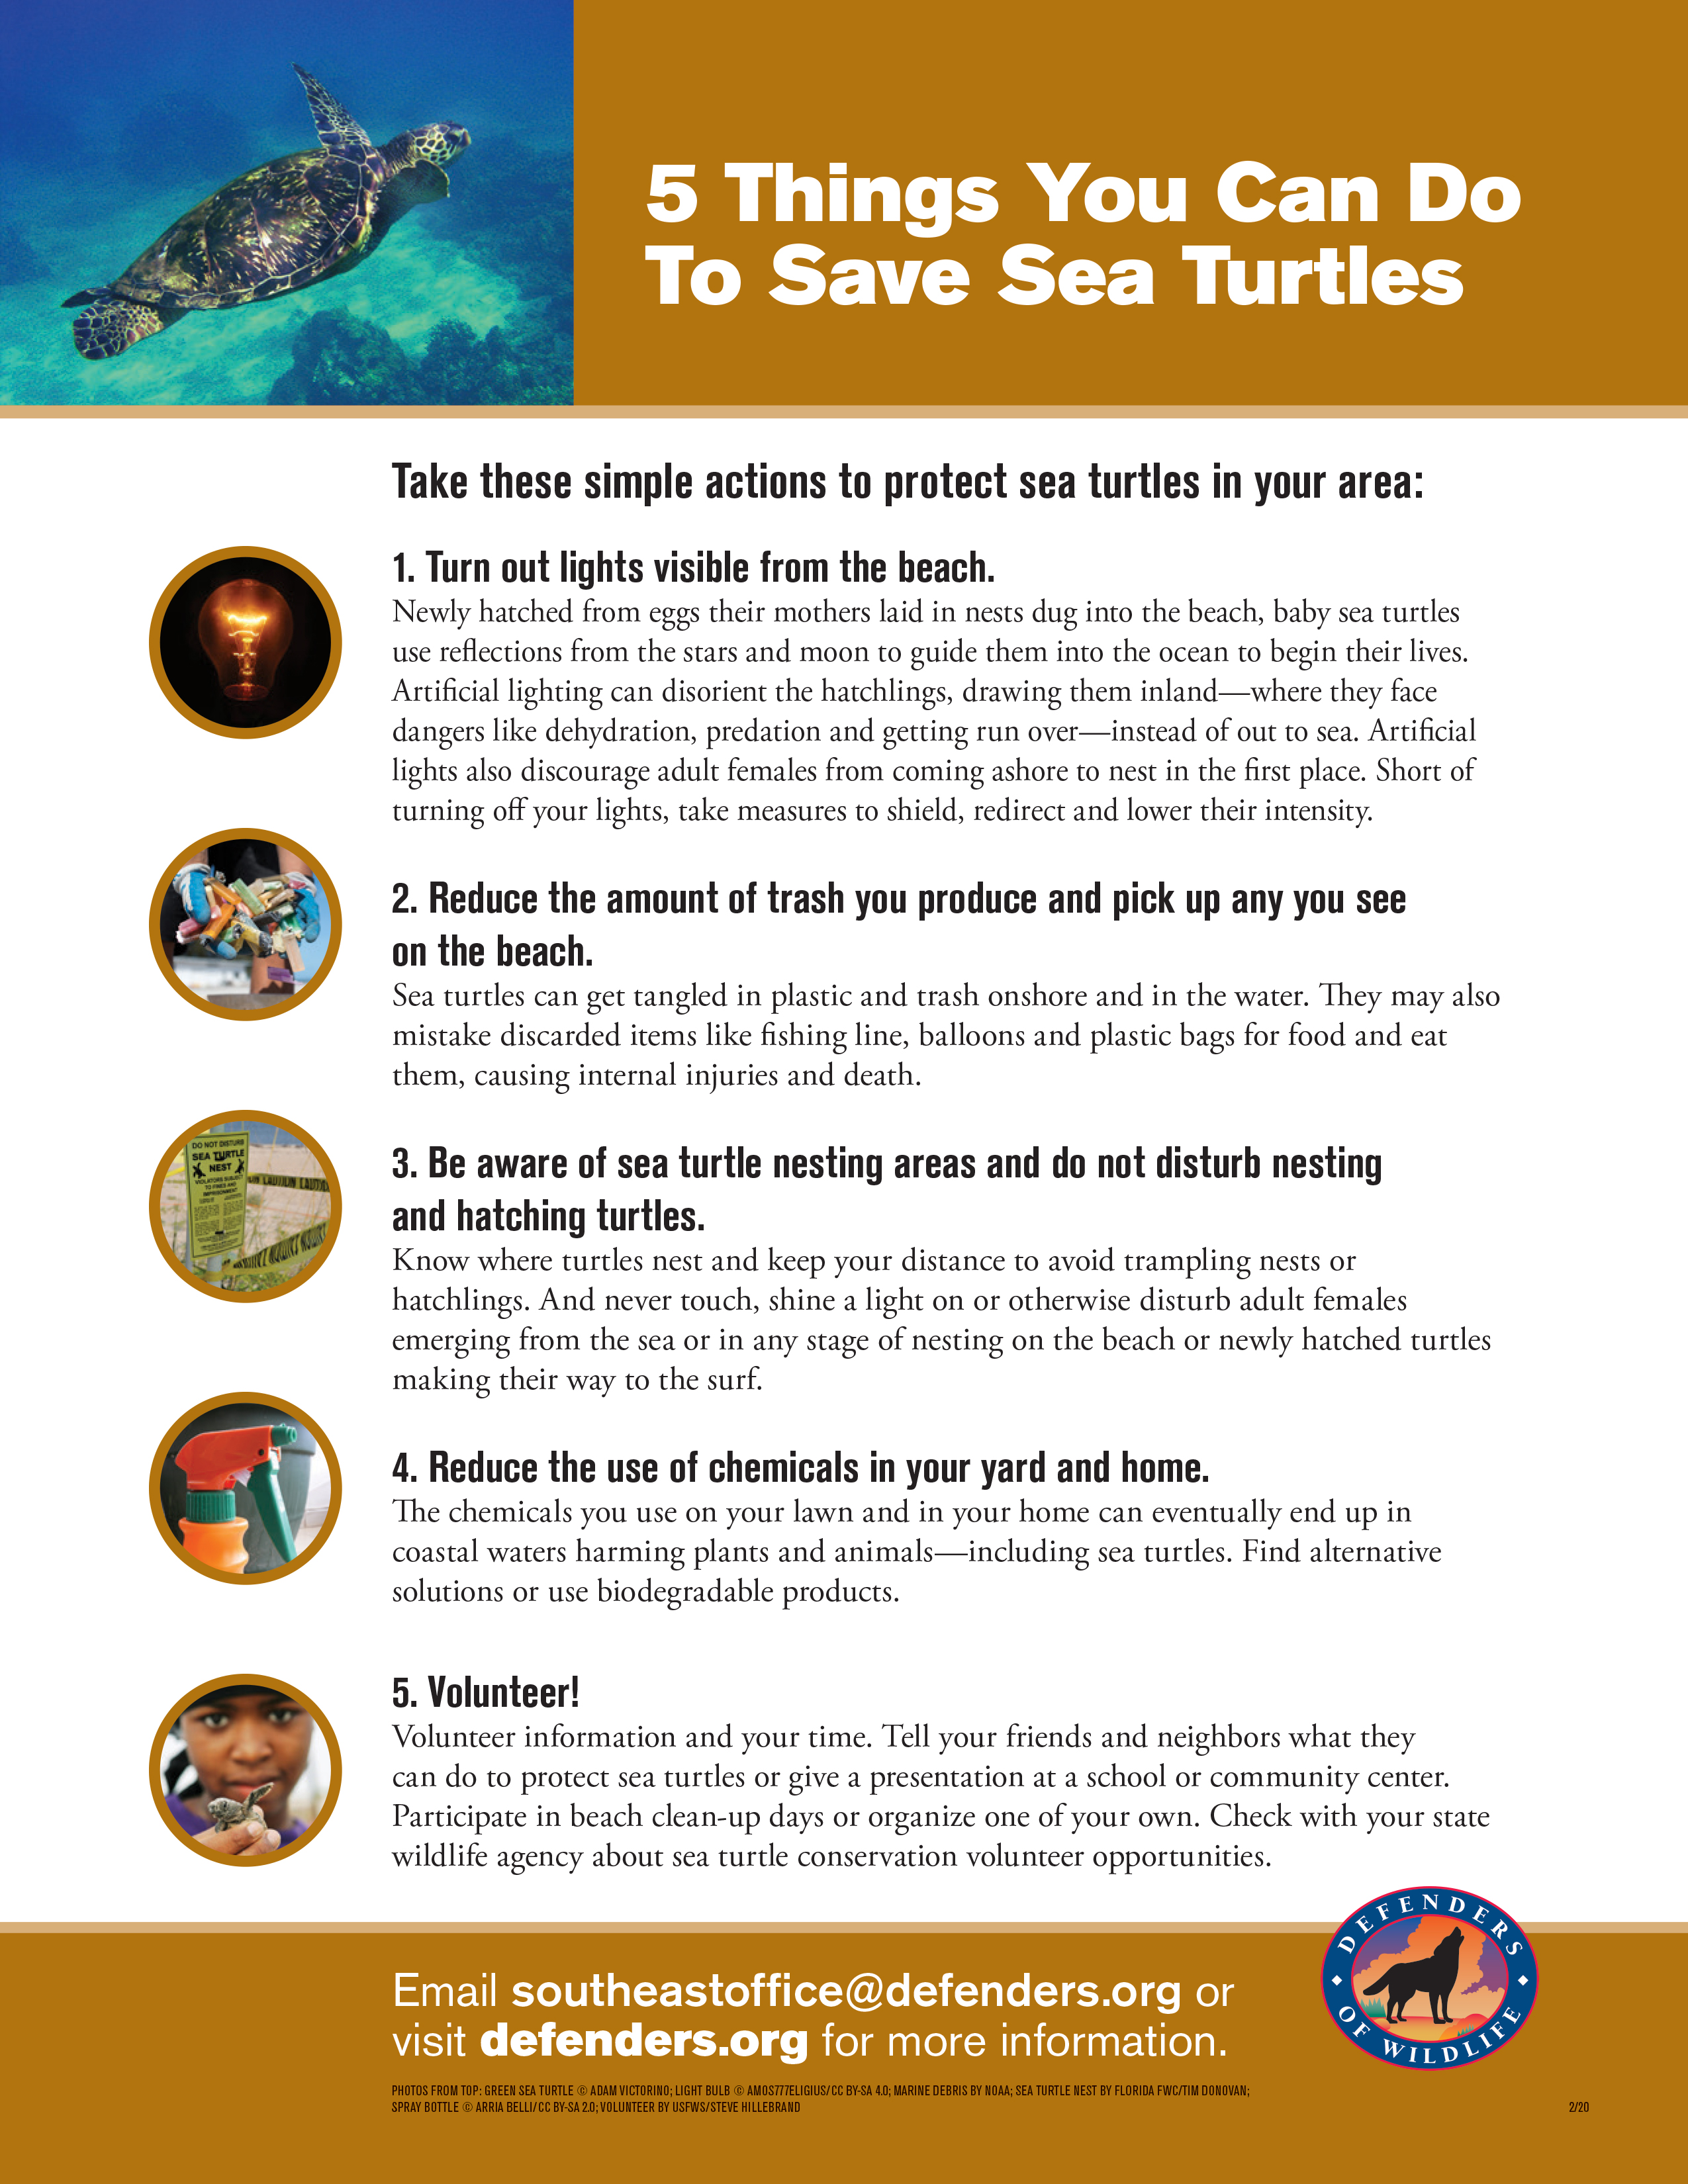 Five 5 things you can do to save sea turtles